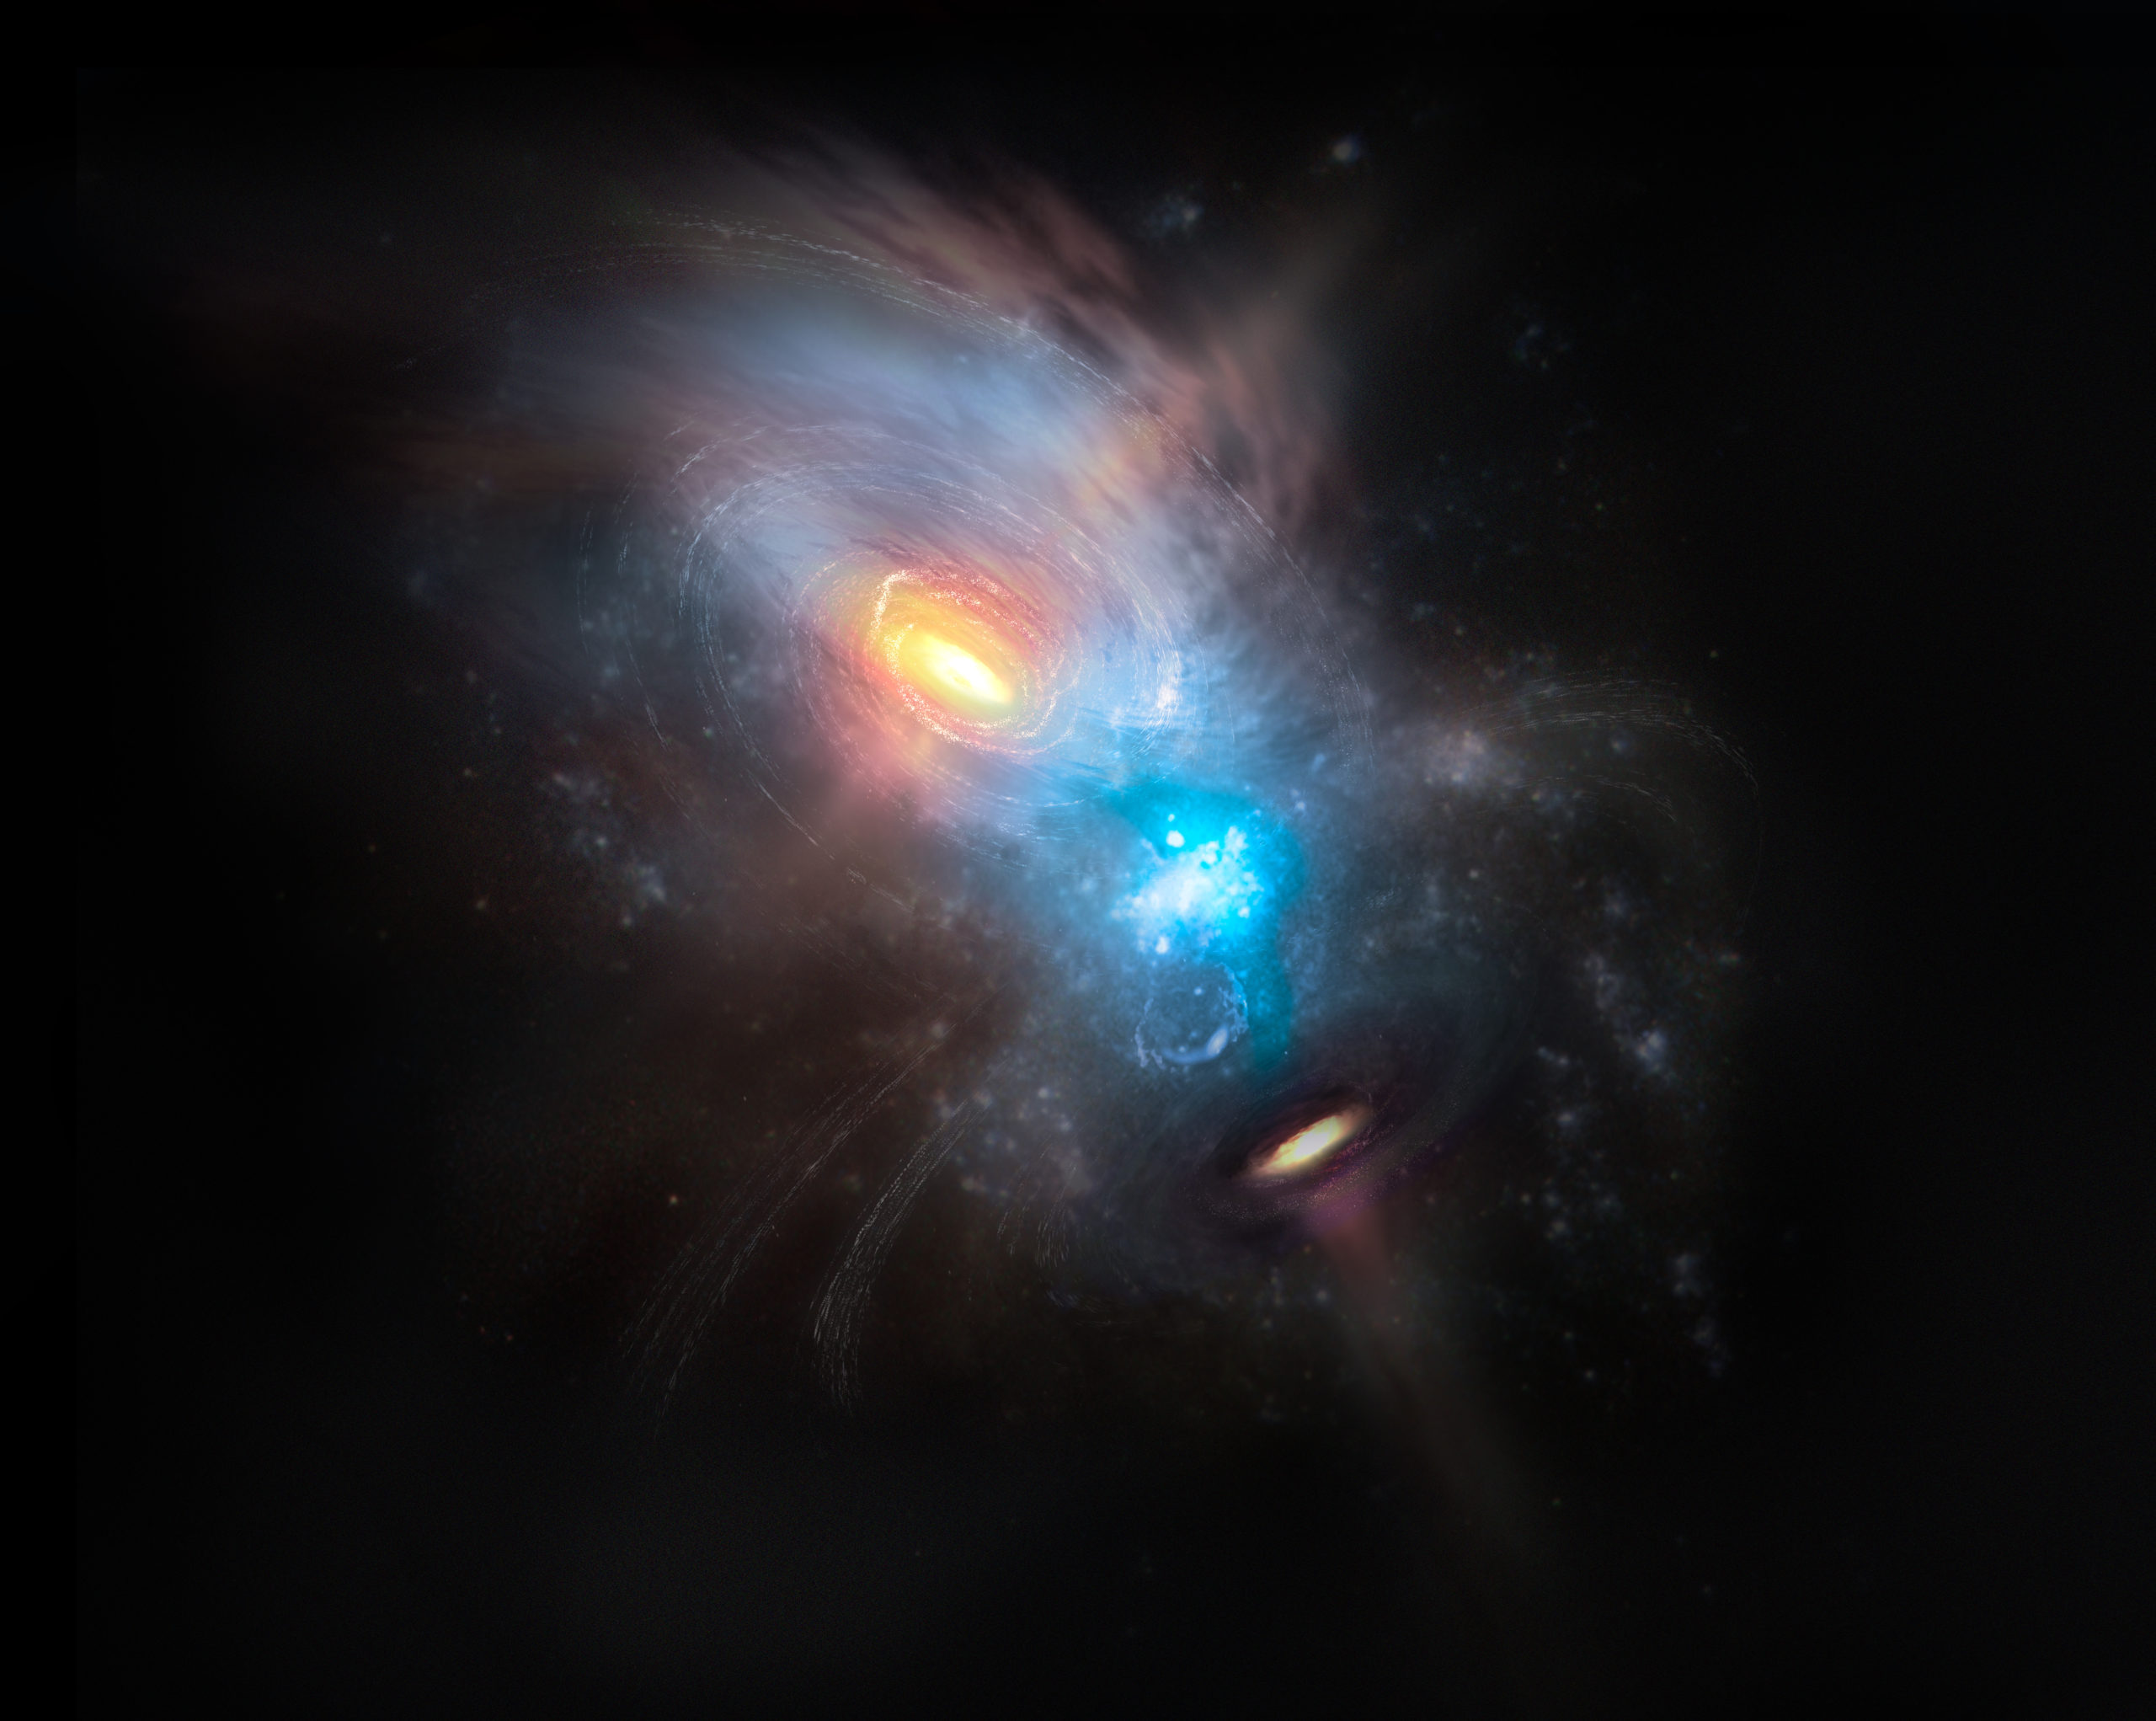 Artist impression of the merging galaxy NGC 6240